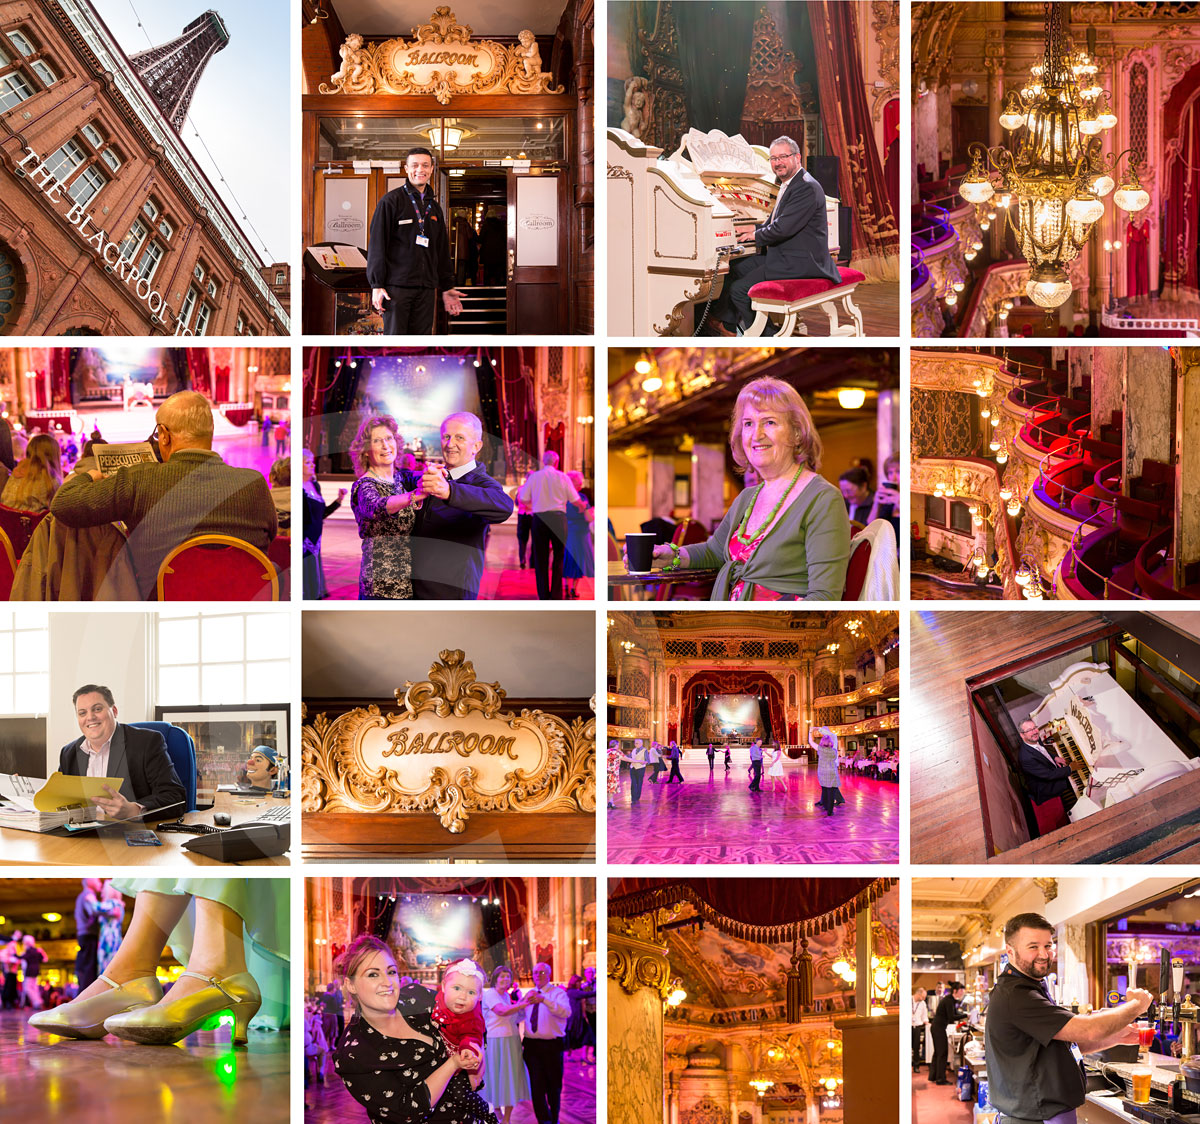 Candis-magazine-editorial-blackpool-tower-ballroom-dancing-photographer-reportage